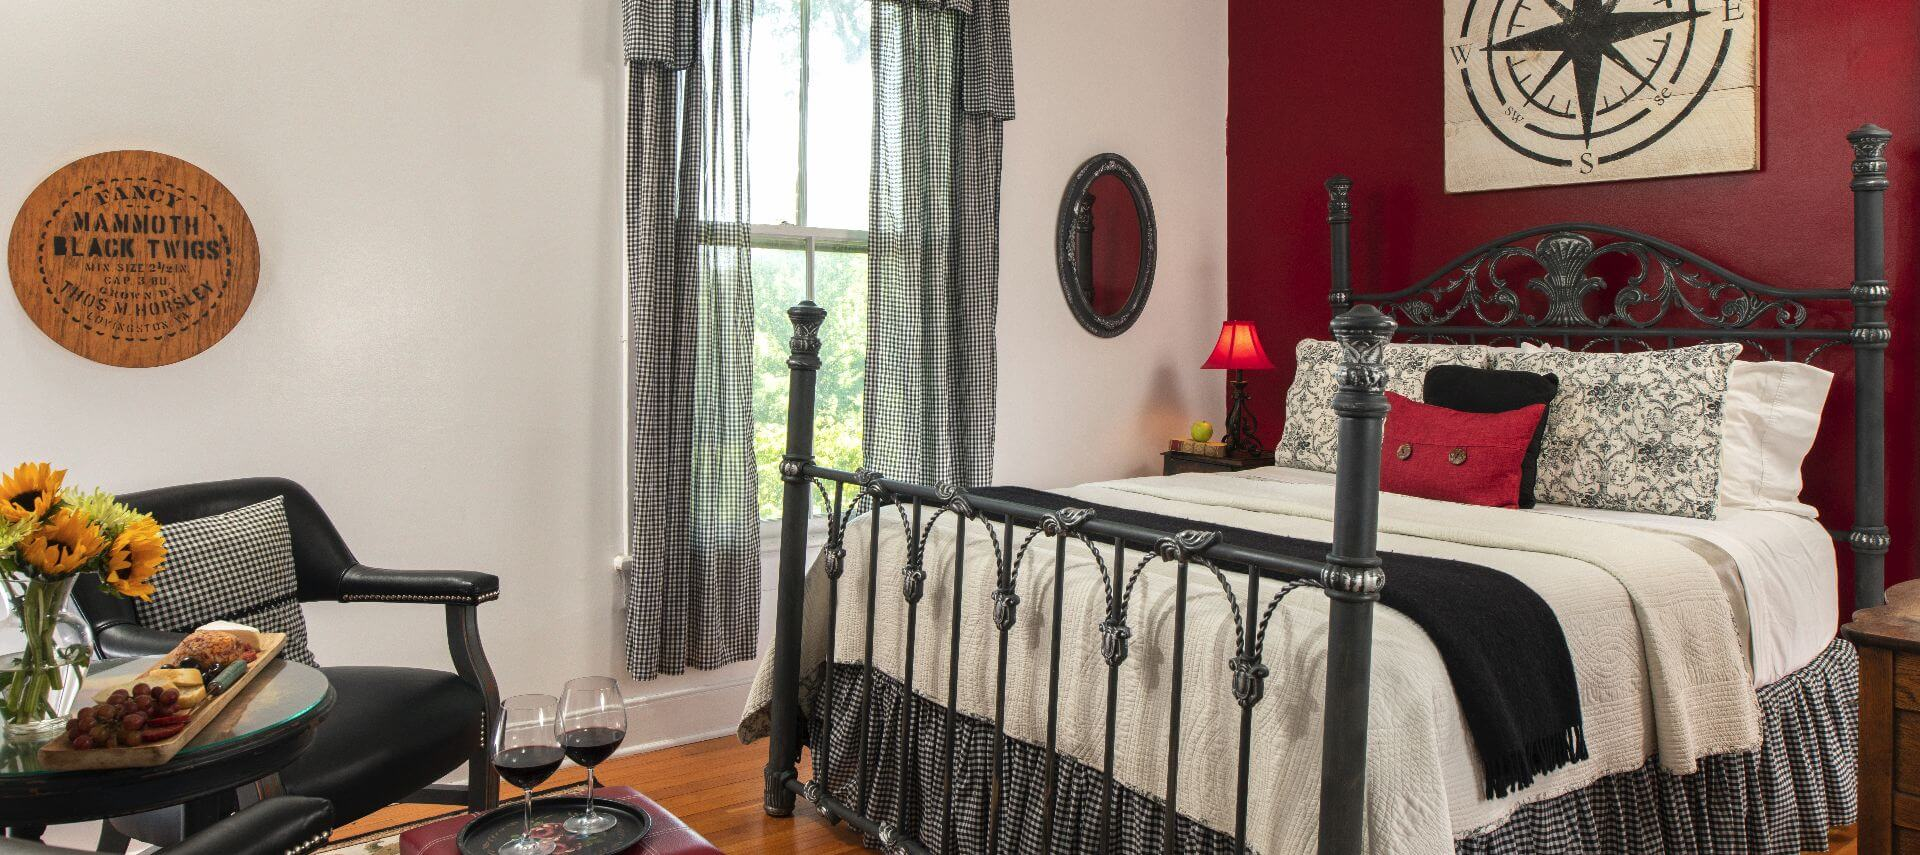 Large black bedstead in a room decorated in whtie with black and red touches.